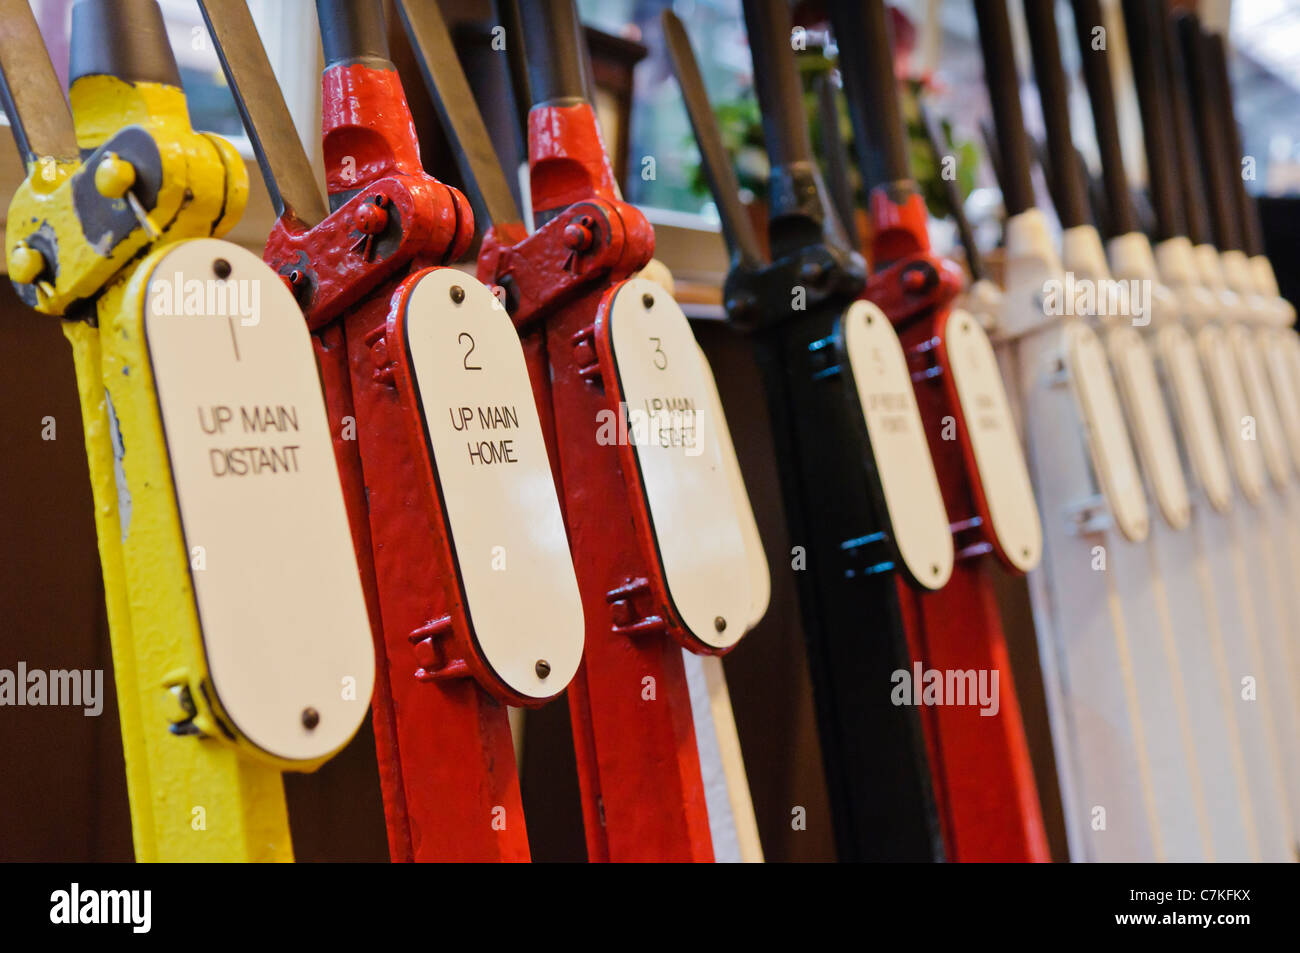 Point and signal levers in a railway signal box. - Stock Image